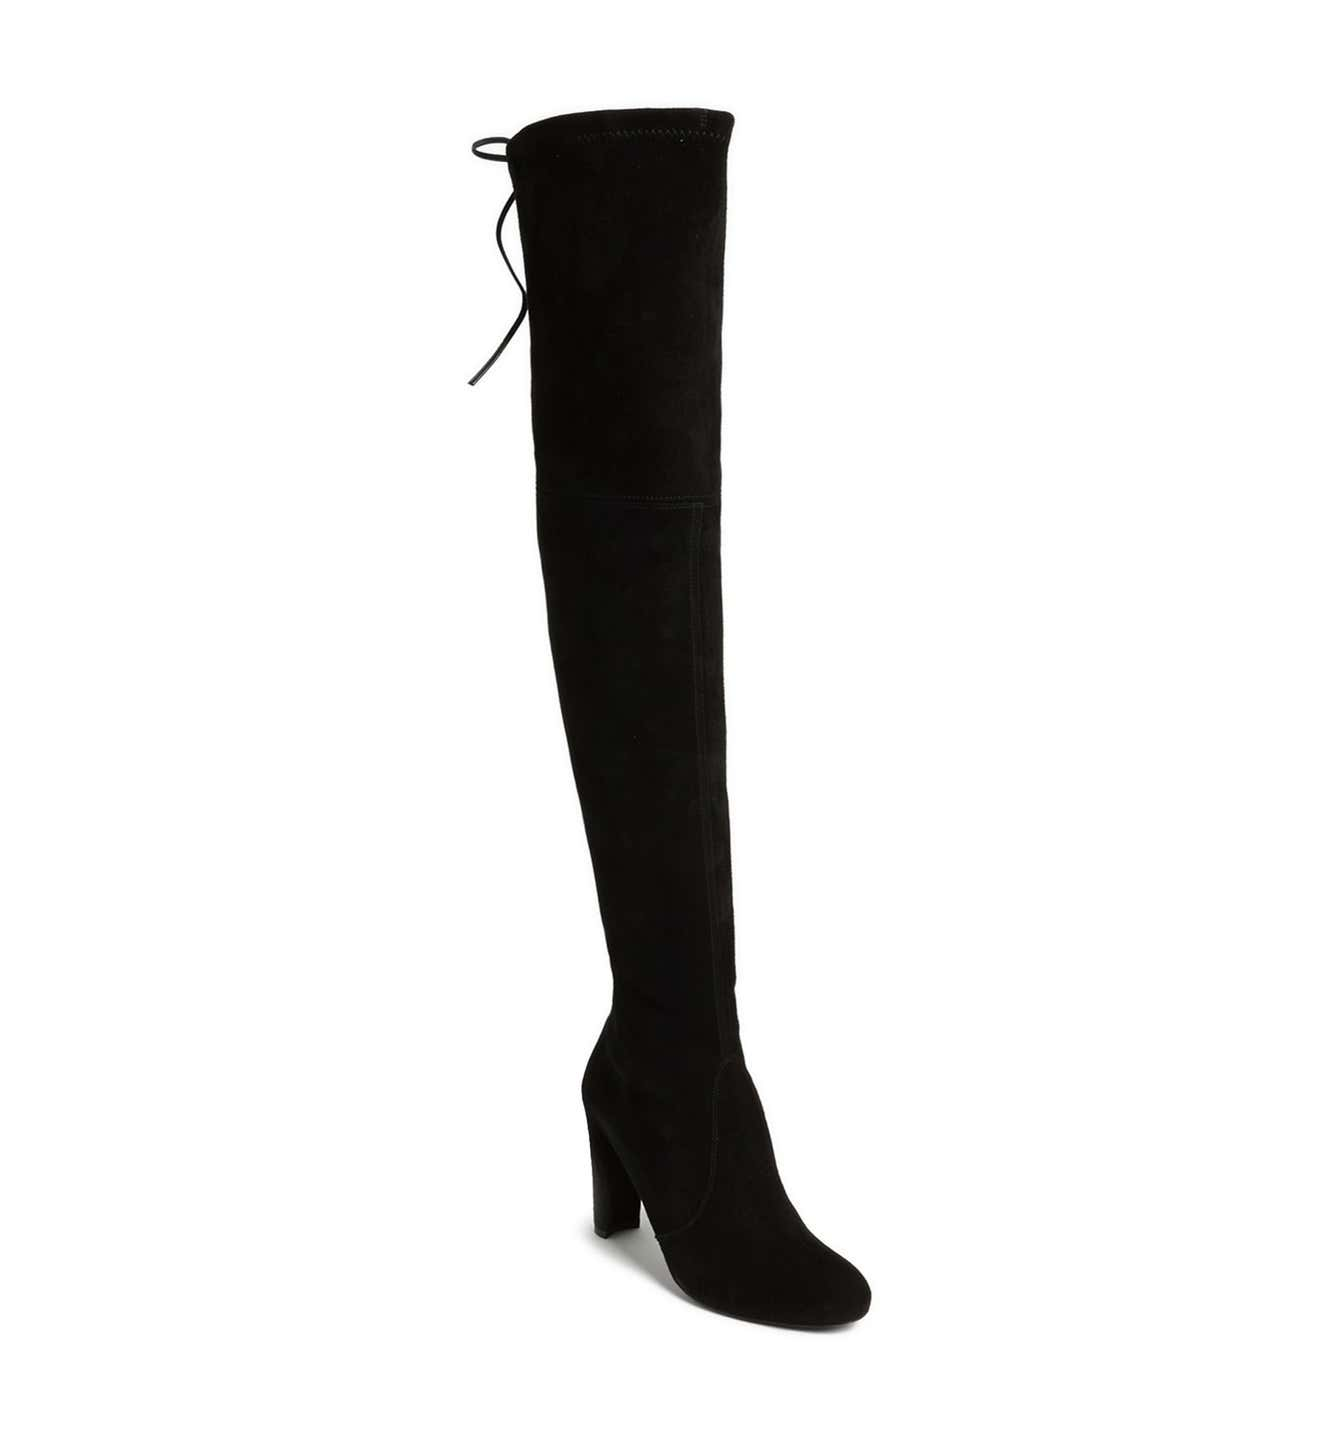 Nordstrom anniversary sale blogger wishlist - Stuart weitzman highlight over the knee boots on sale